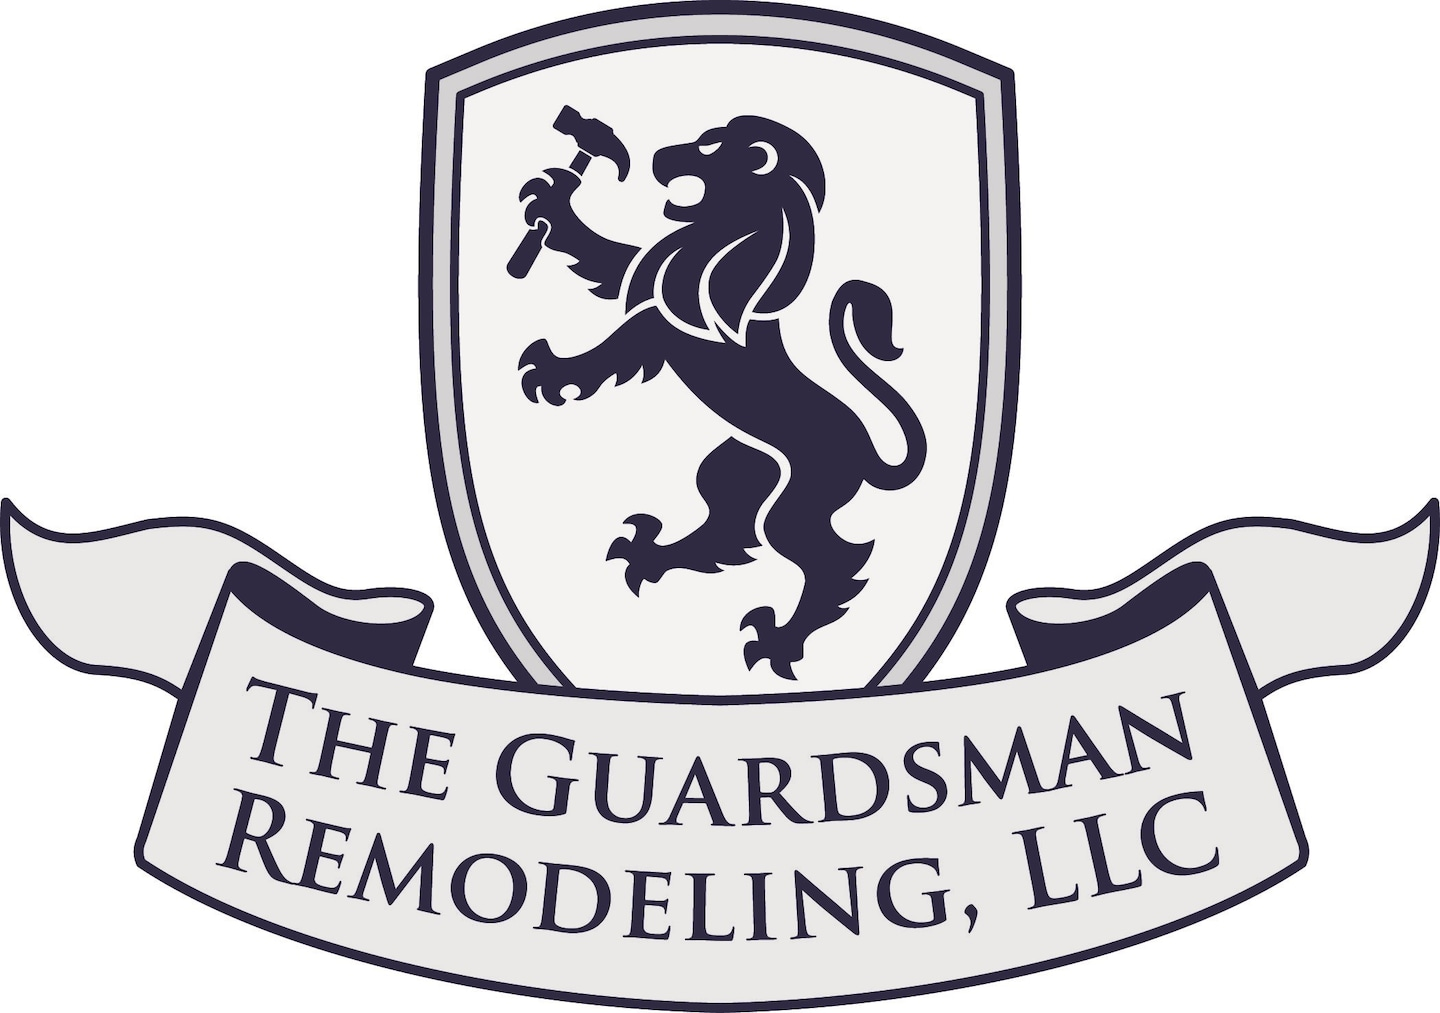 The Guardsman Remodeling